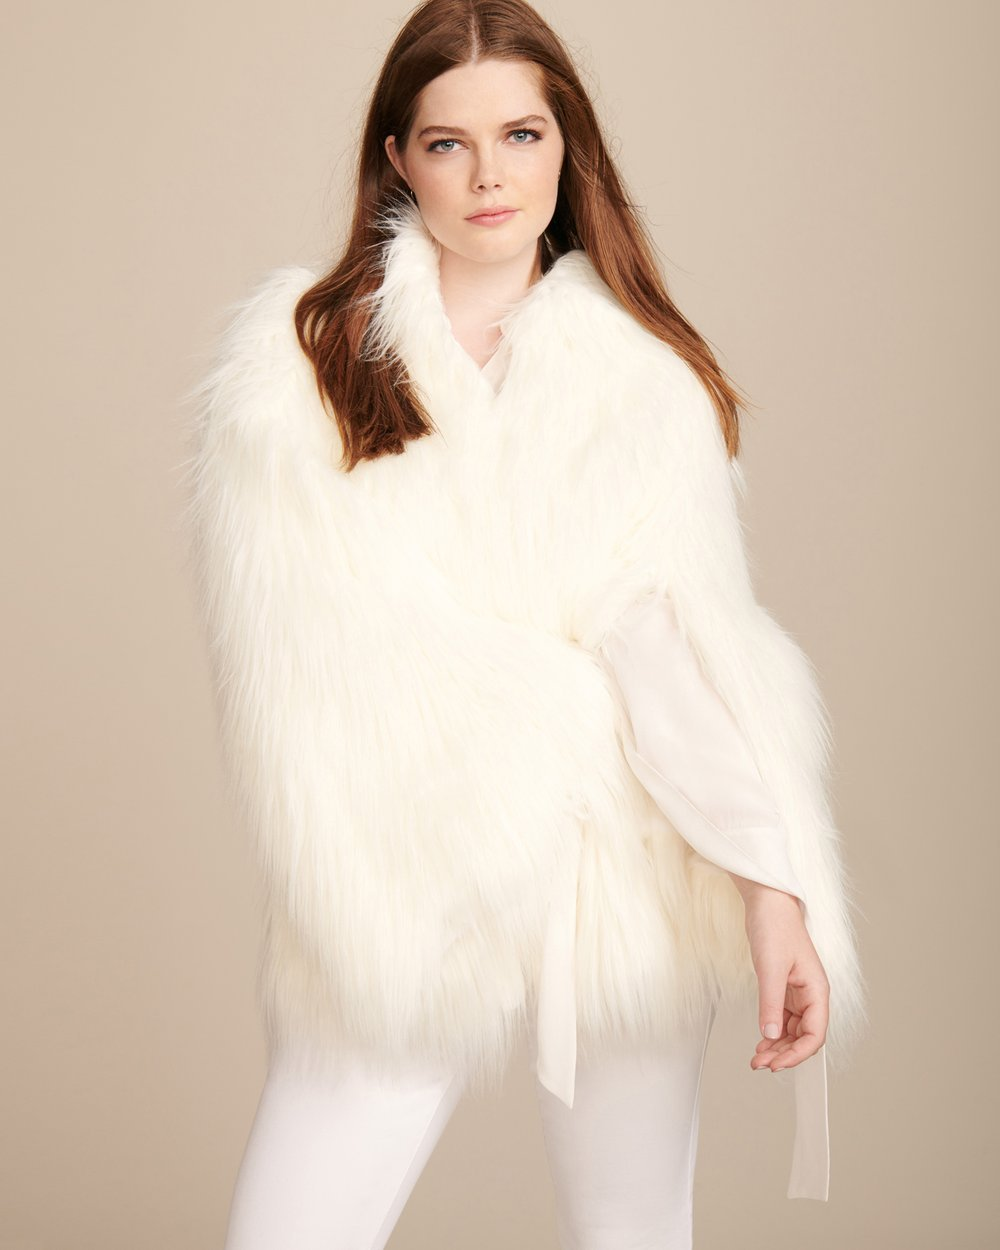 Luxury Plus SIze Fashion Finds at 11 Honore: HOUSE OF FLUFF Convertible Plus Size Cape Coat